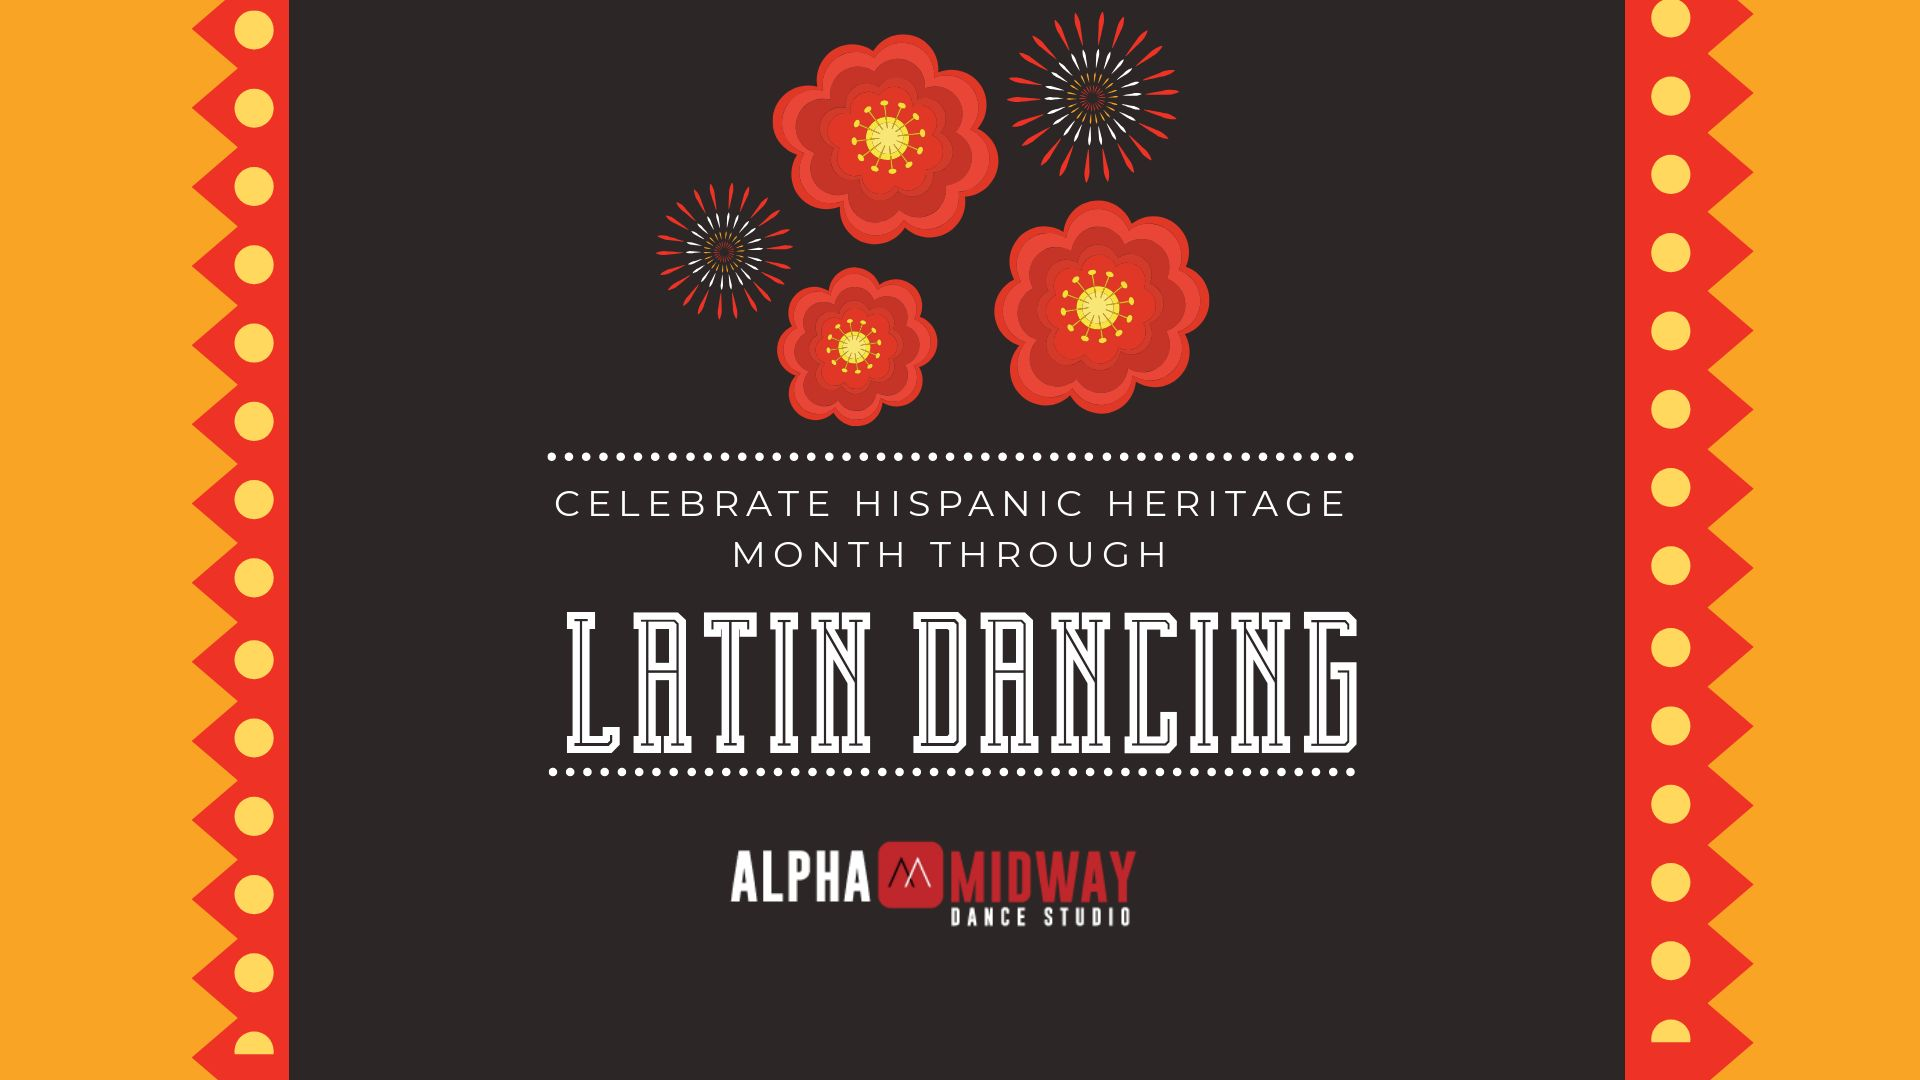 Celebrate Hispanic Heritage Month through Salsa Dancing